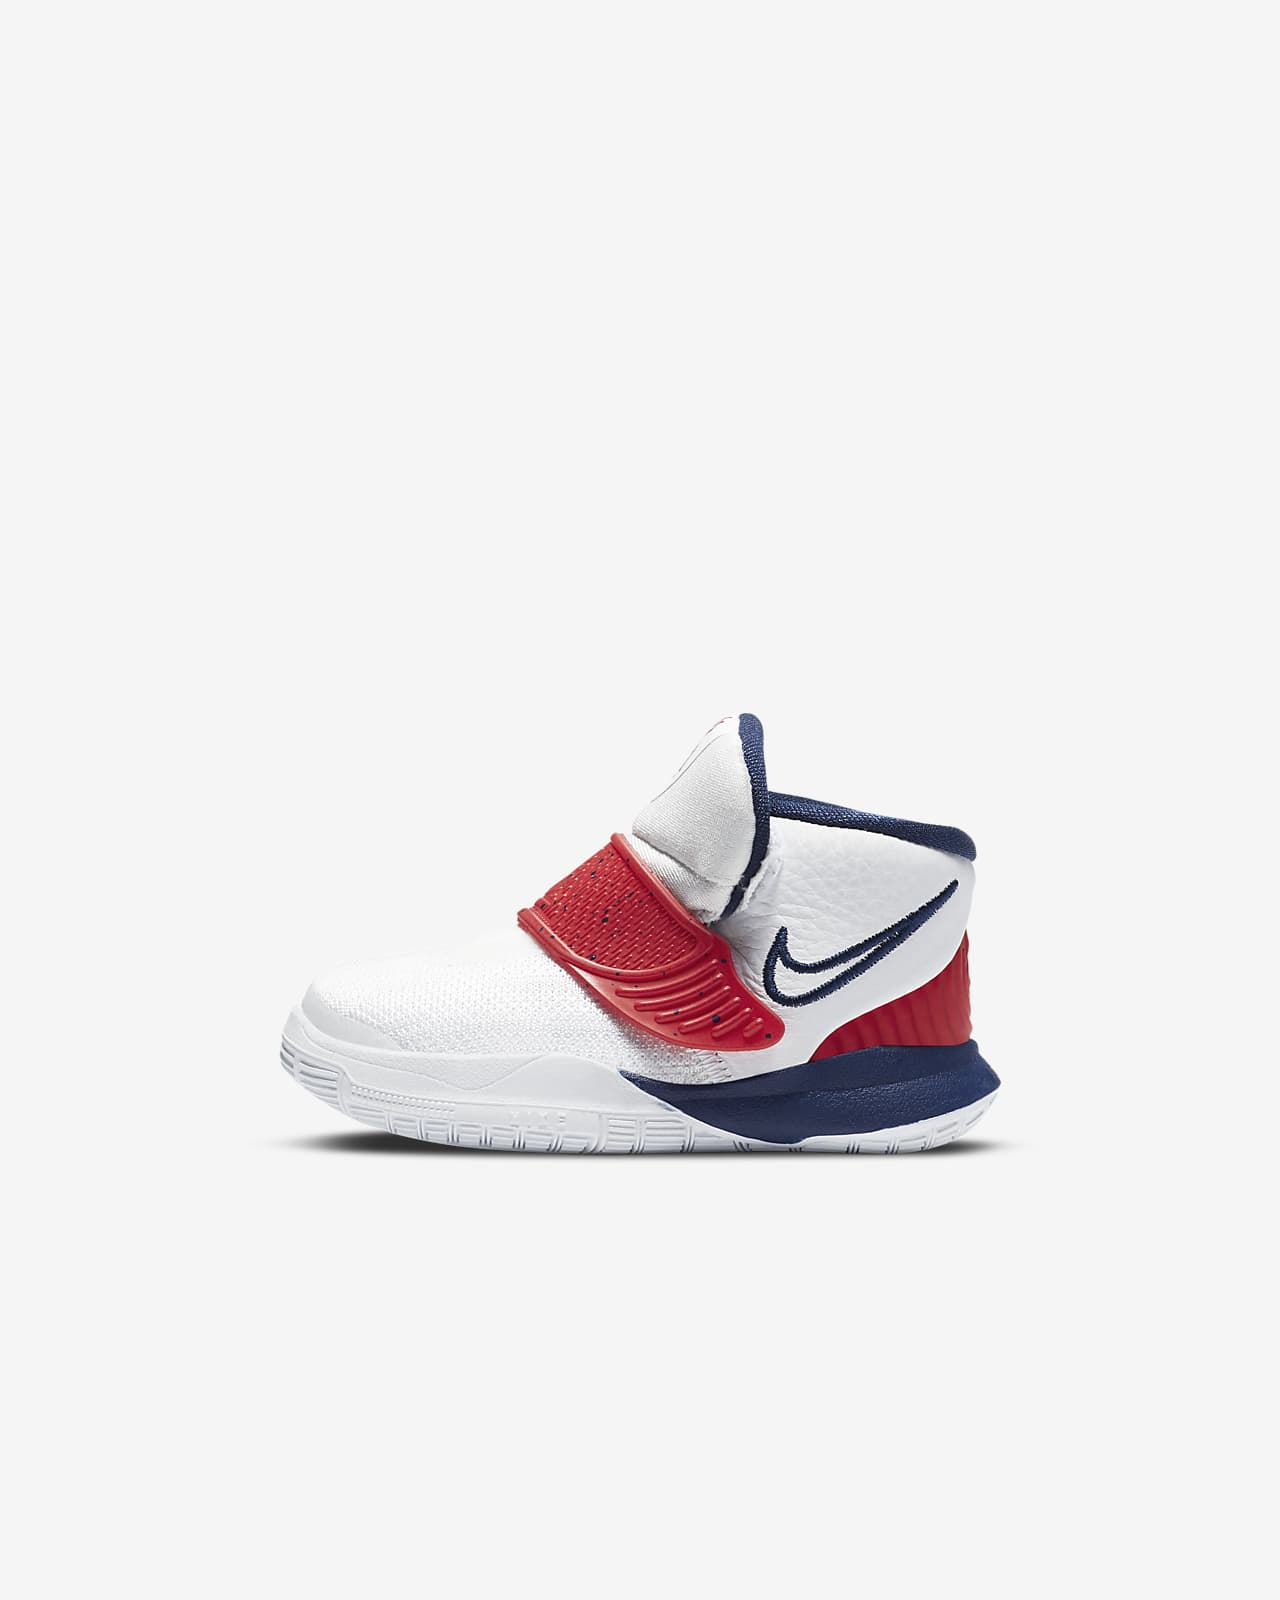 Kyrie 6 Baby/Toddler Shoe